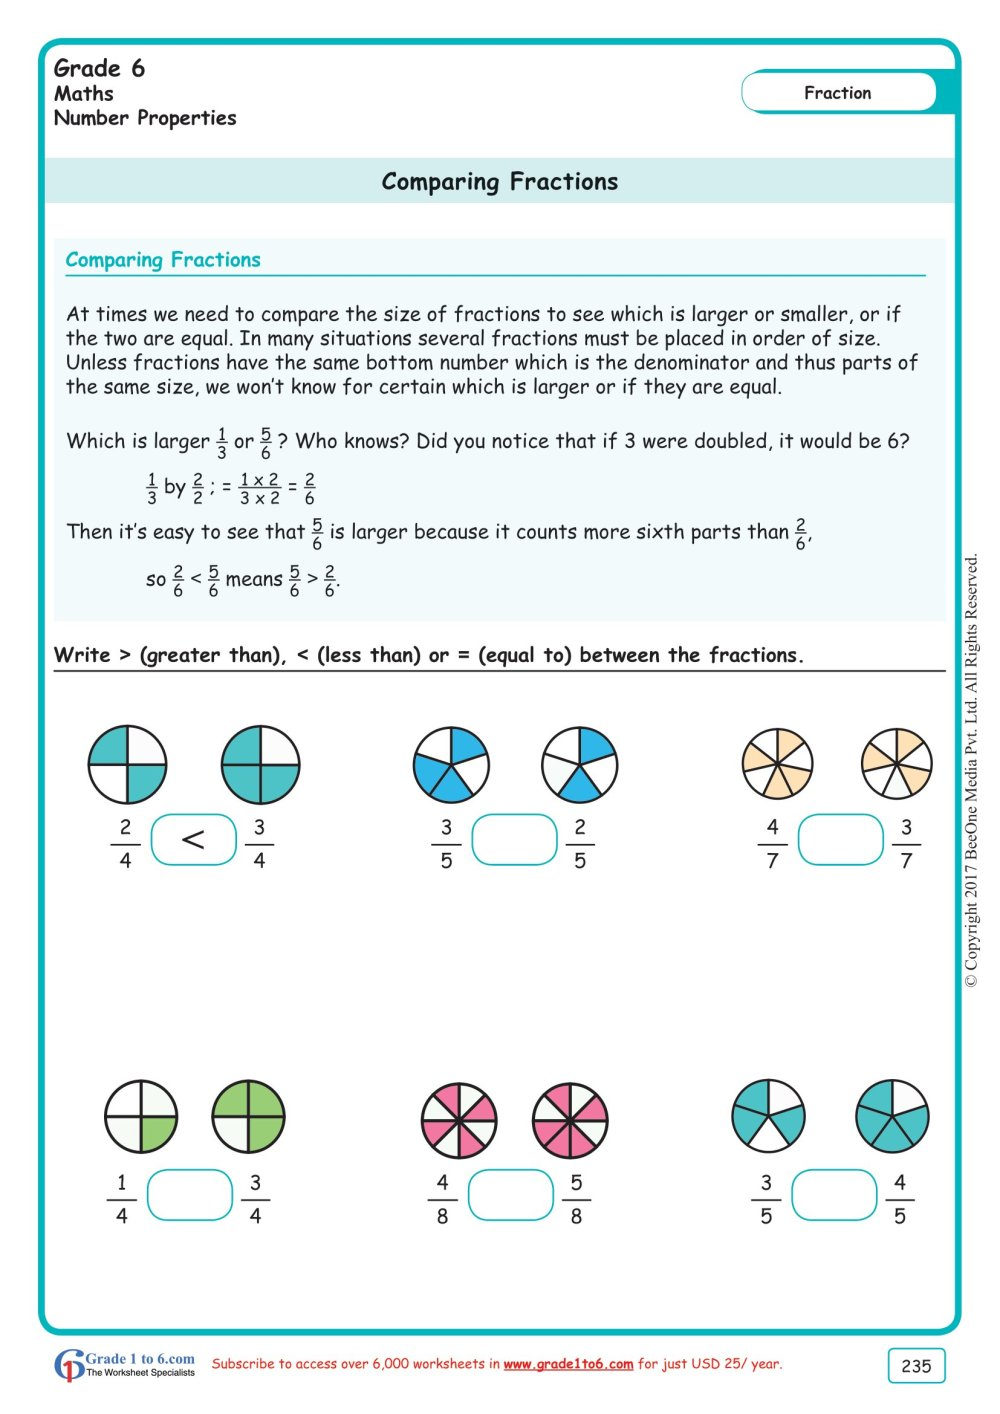 medium resolution of Multiplying Mixed Fractions Worksheets 6th Grade   Printable Worksheets and  Activities for Teachers